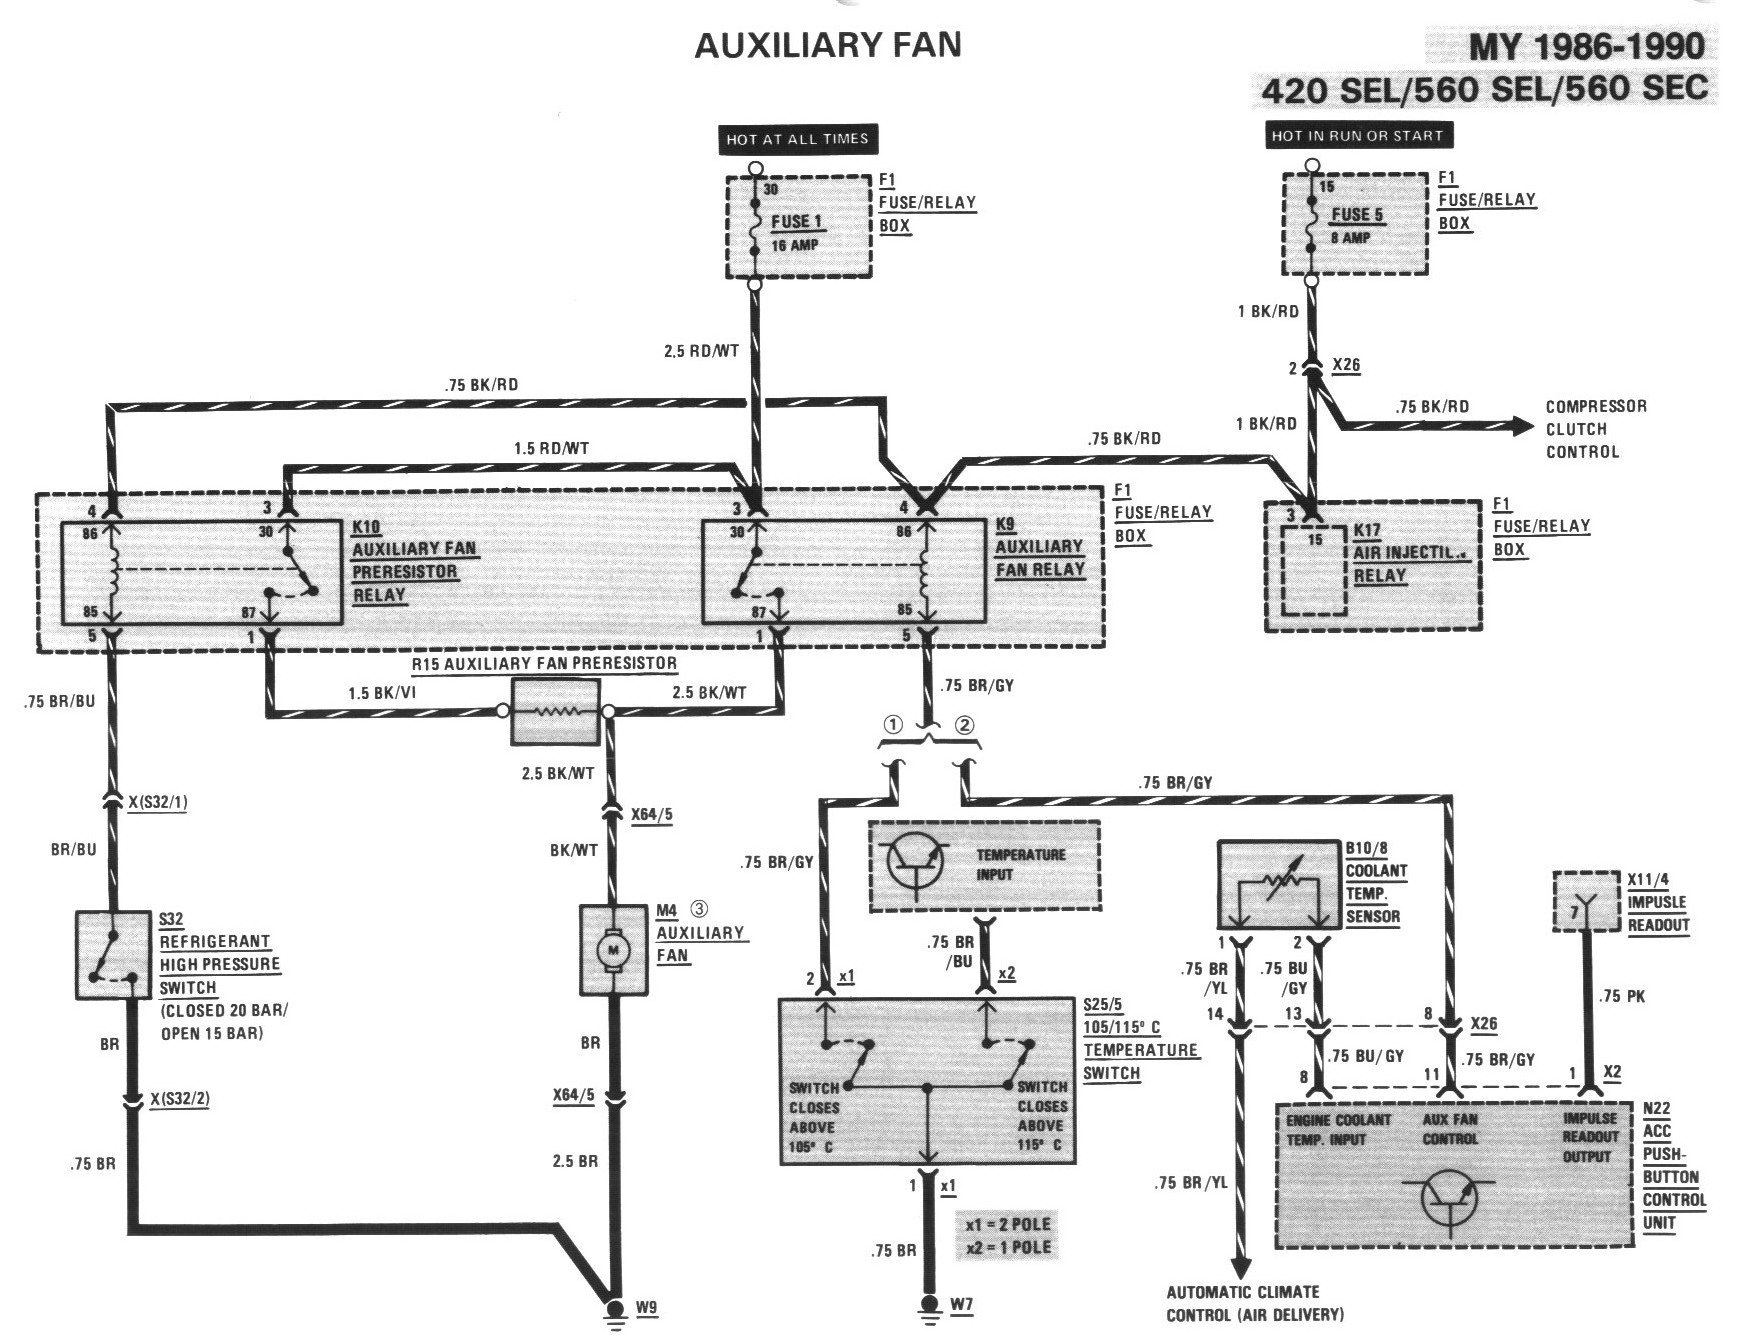 2013 07 29_045606_126_auxillary_fan_wiring_diagram 1986 mercedes 420 sel a c auxillary fan does not come on no power mercedes vito w639 fuse box location at creativeand.co